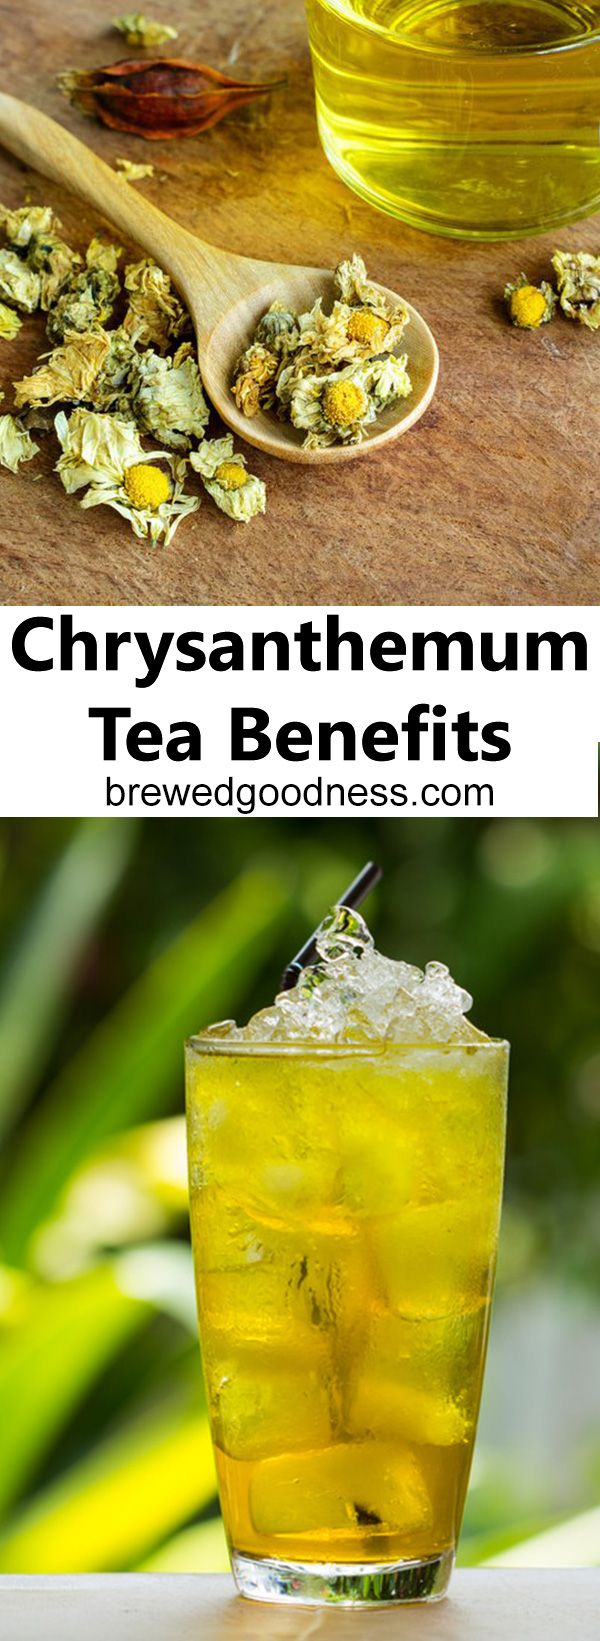 There are a ton of health benefits to drinking chrysanthemum tea!